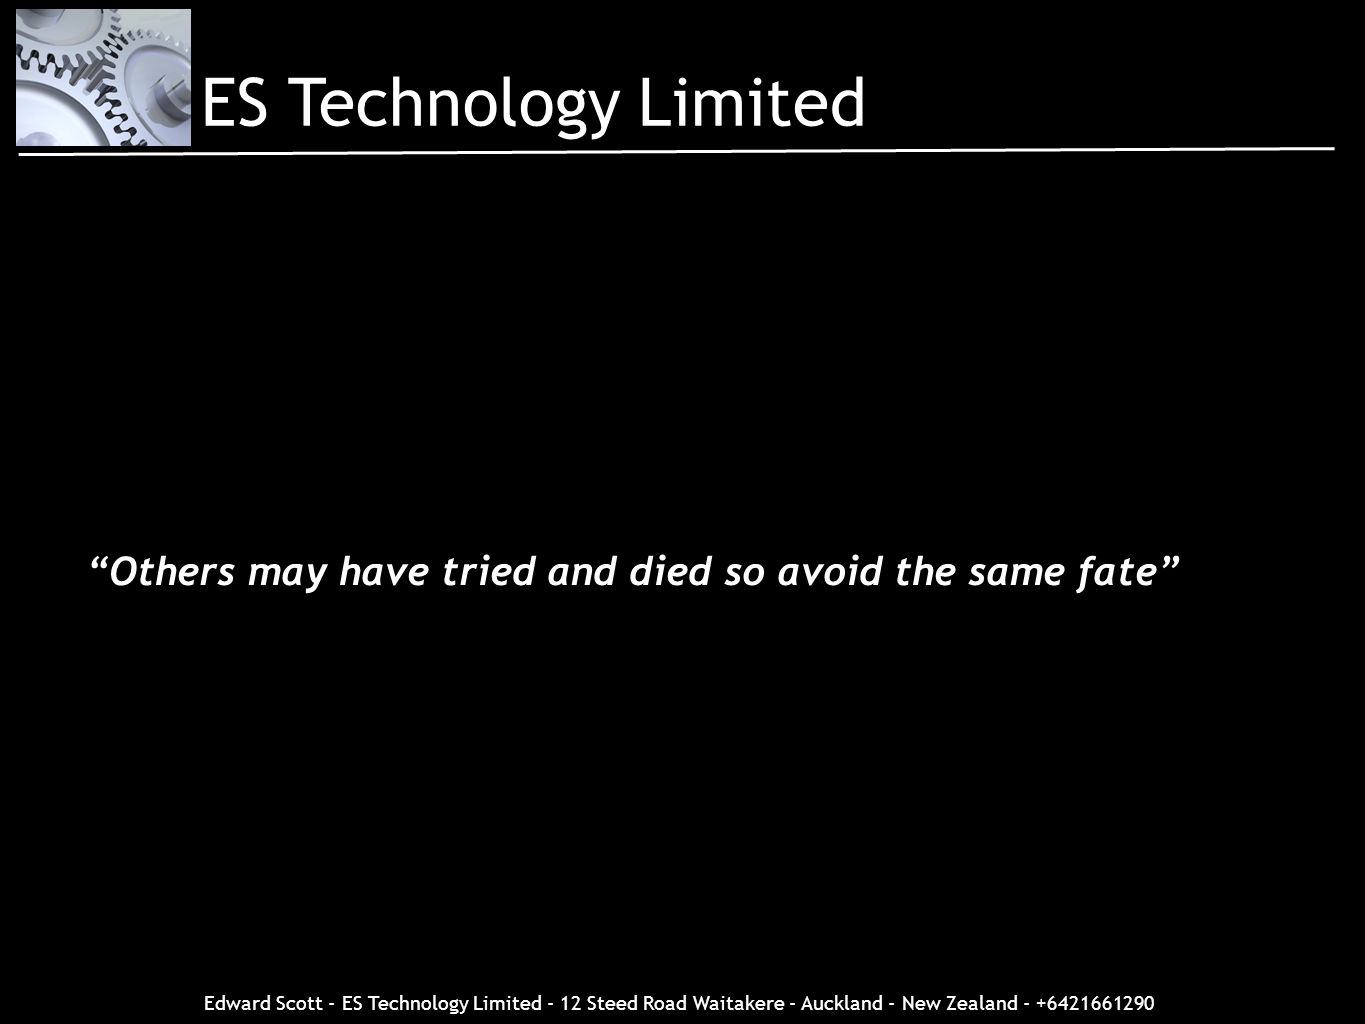 ES Technology LimitedRemember to be weary, Others may have tried and died so avoid the same fate.